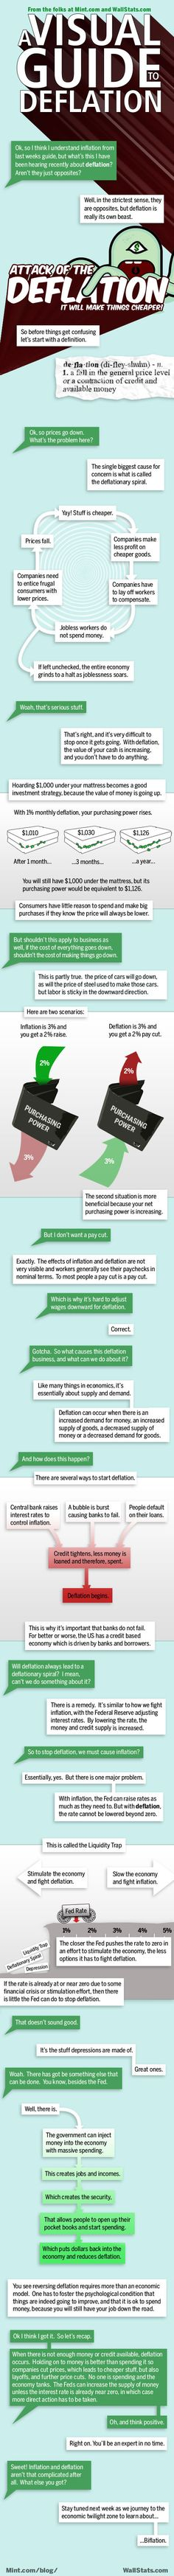 How deflation works and why the Gold standard doesn't quite work.